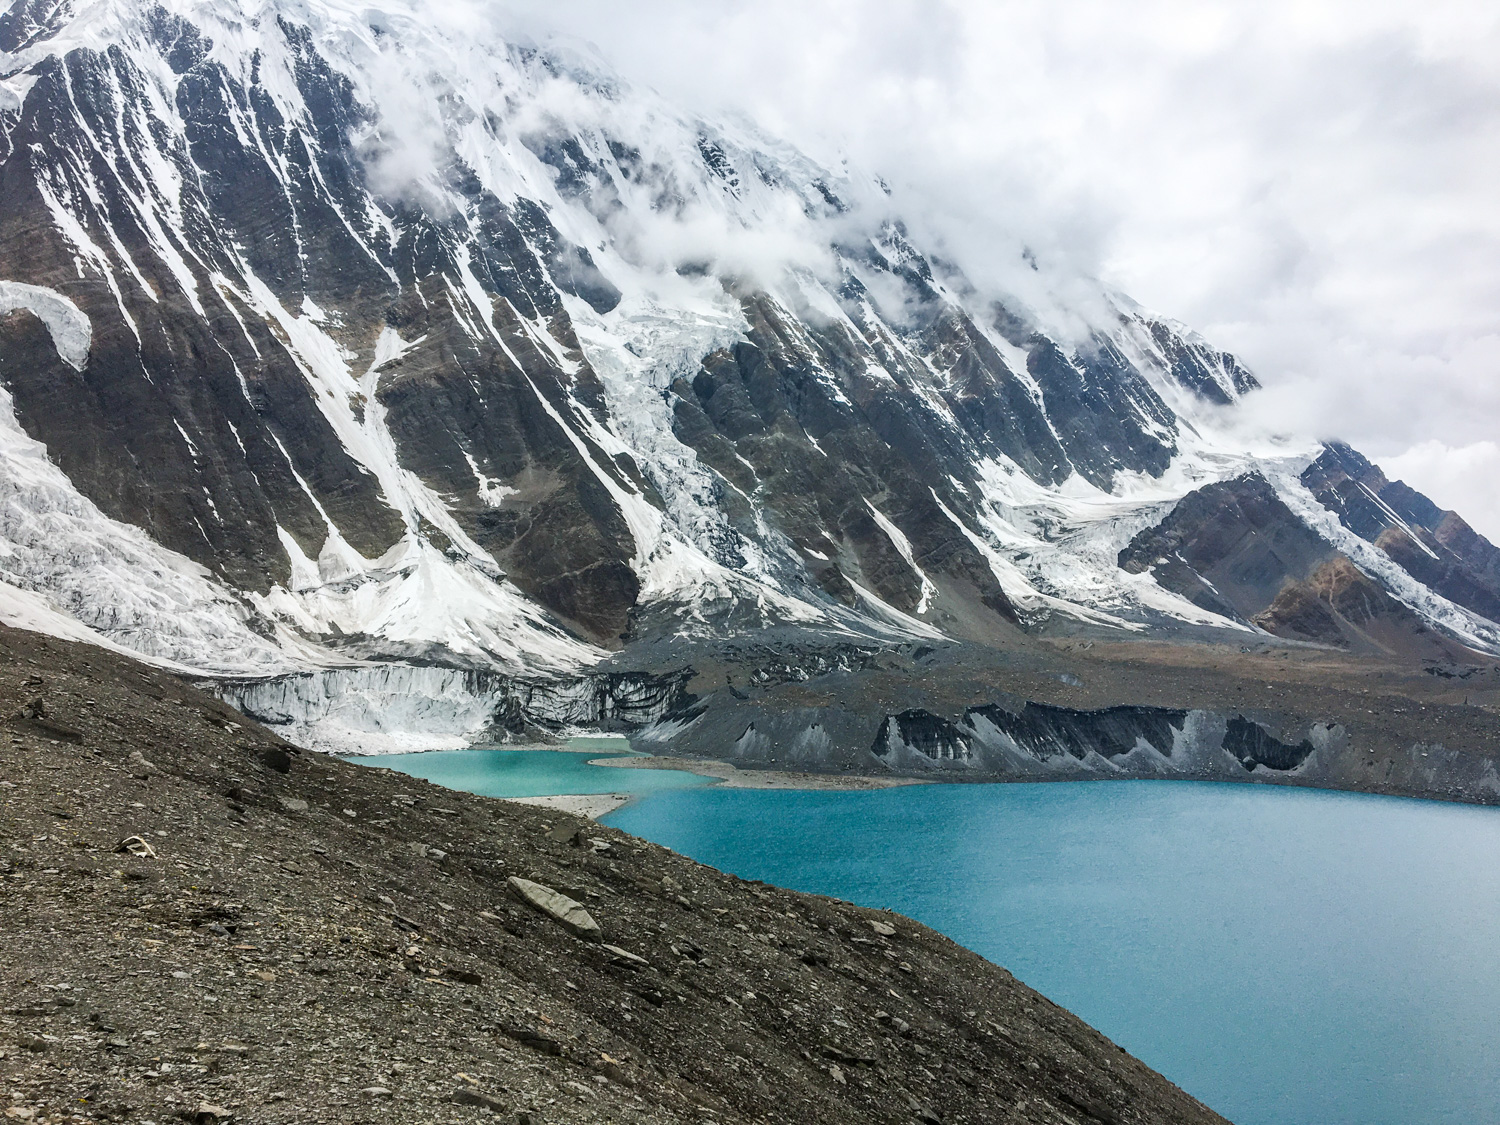 Eco Holiday Asia A Trekking Company in Nepal Changing The Face Of Tourism - The Wayward Post